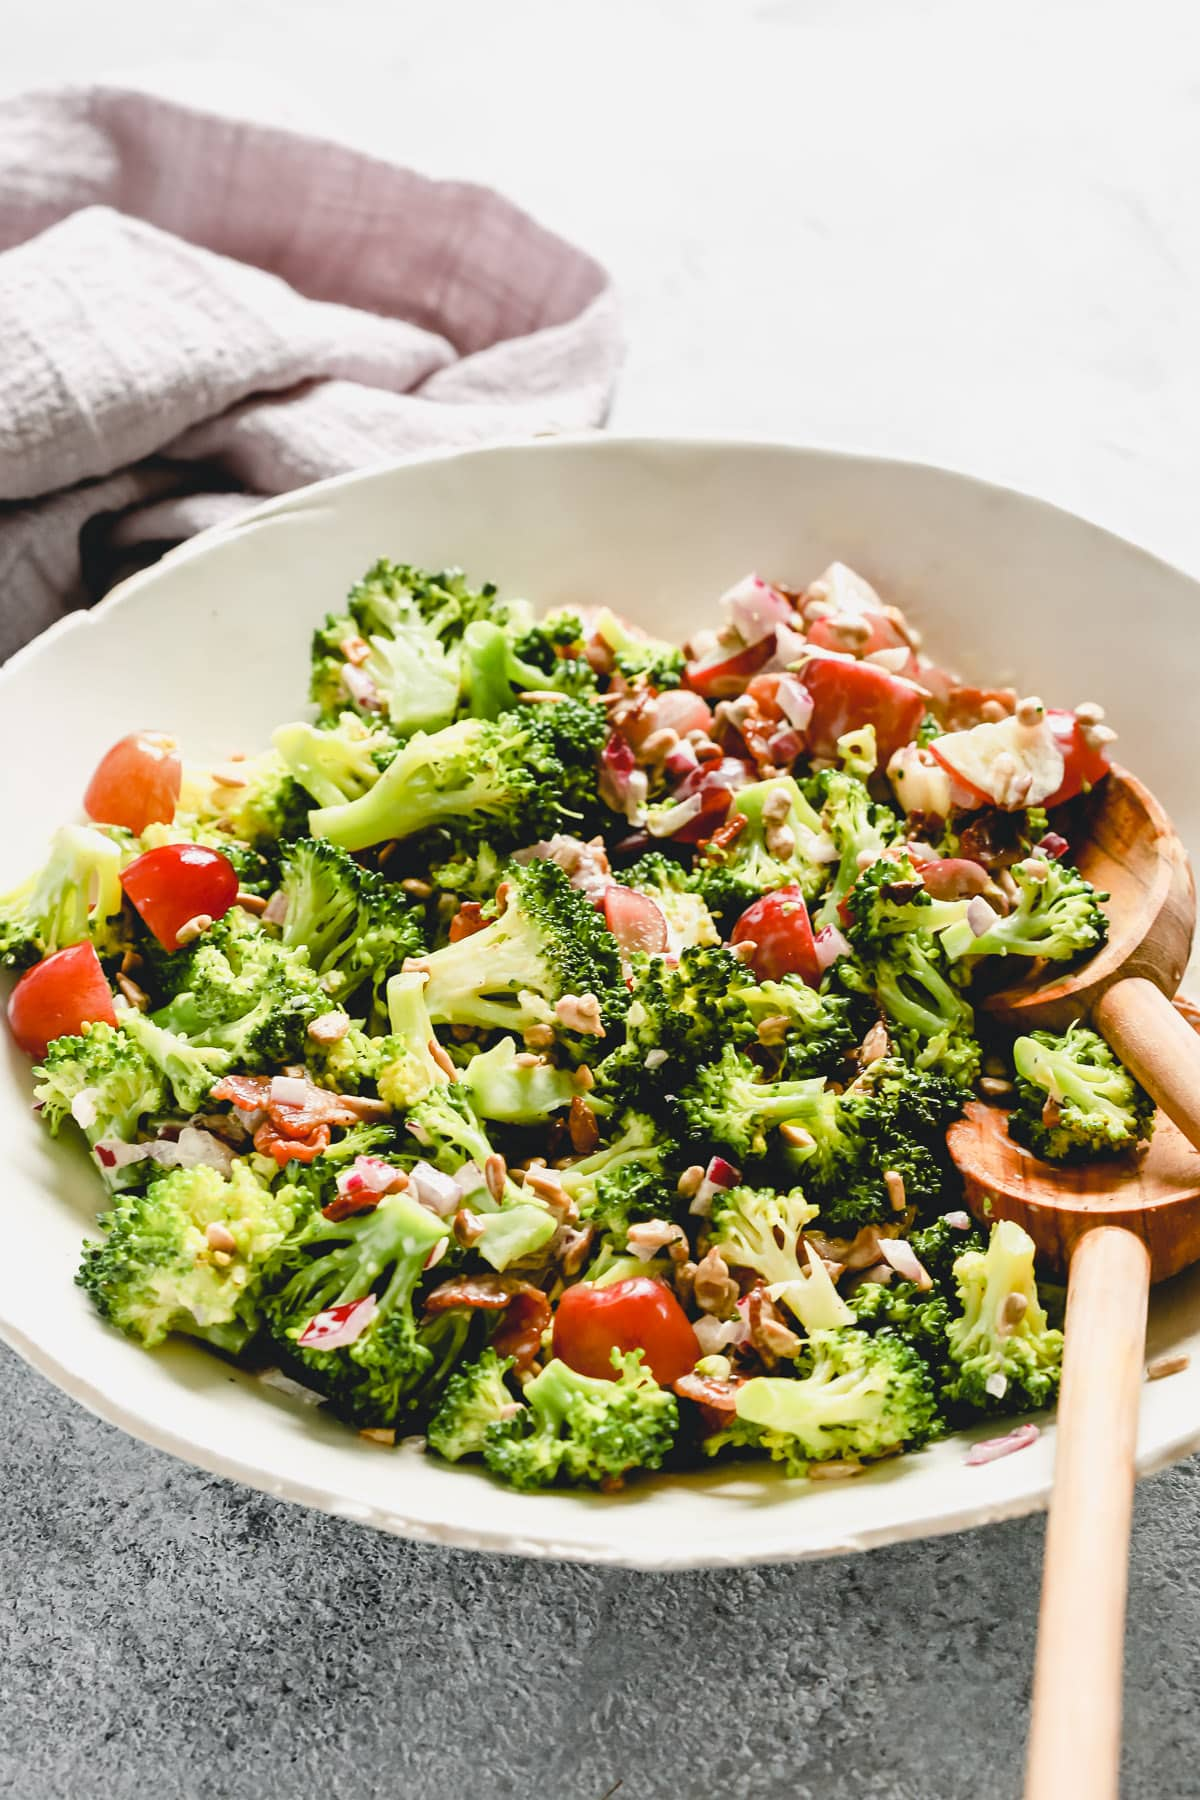 A white plate containing broccoli salad with two wooden spoons.